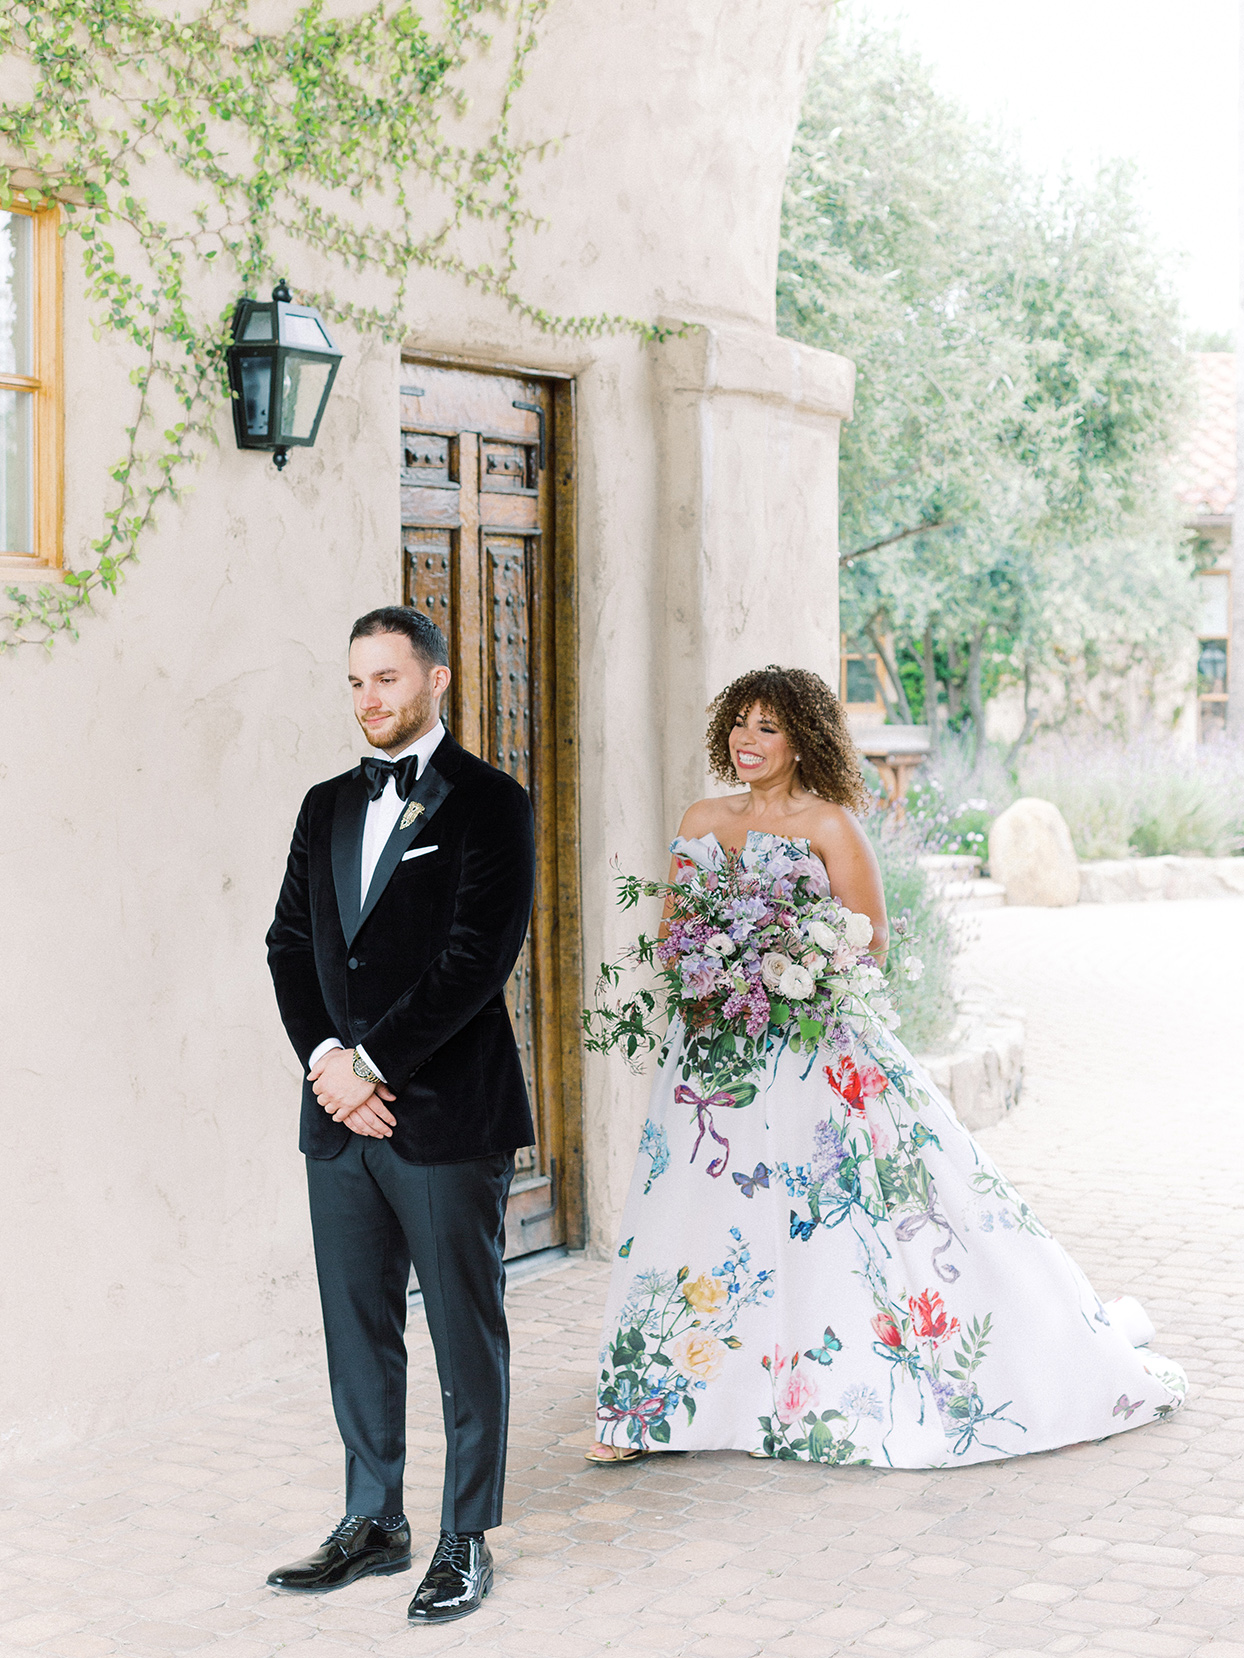 This Bride S Floral Wedding Dress Foreshadowed The Flower And